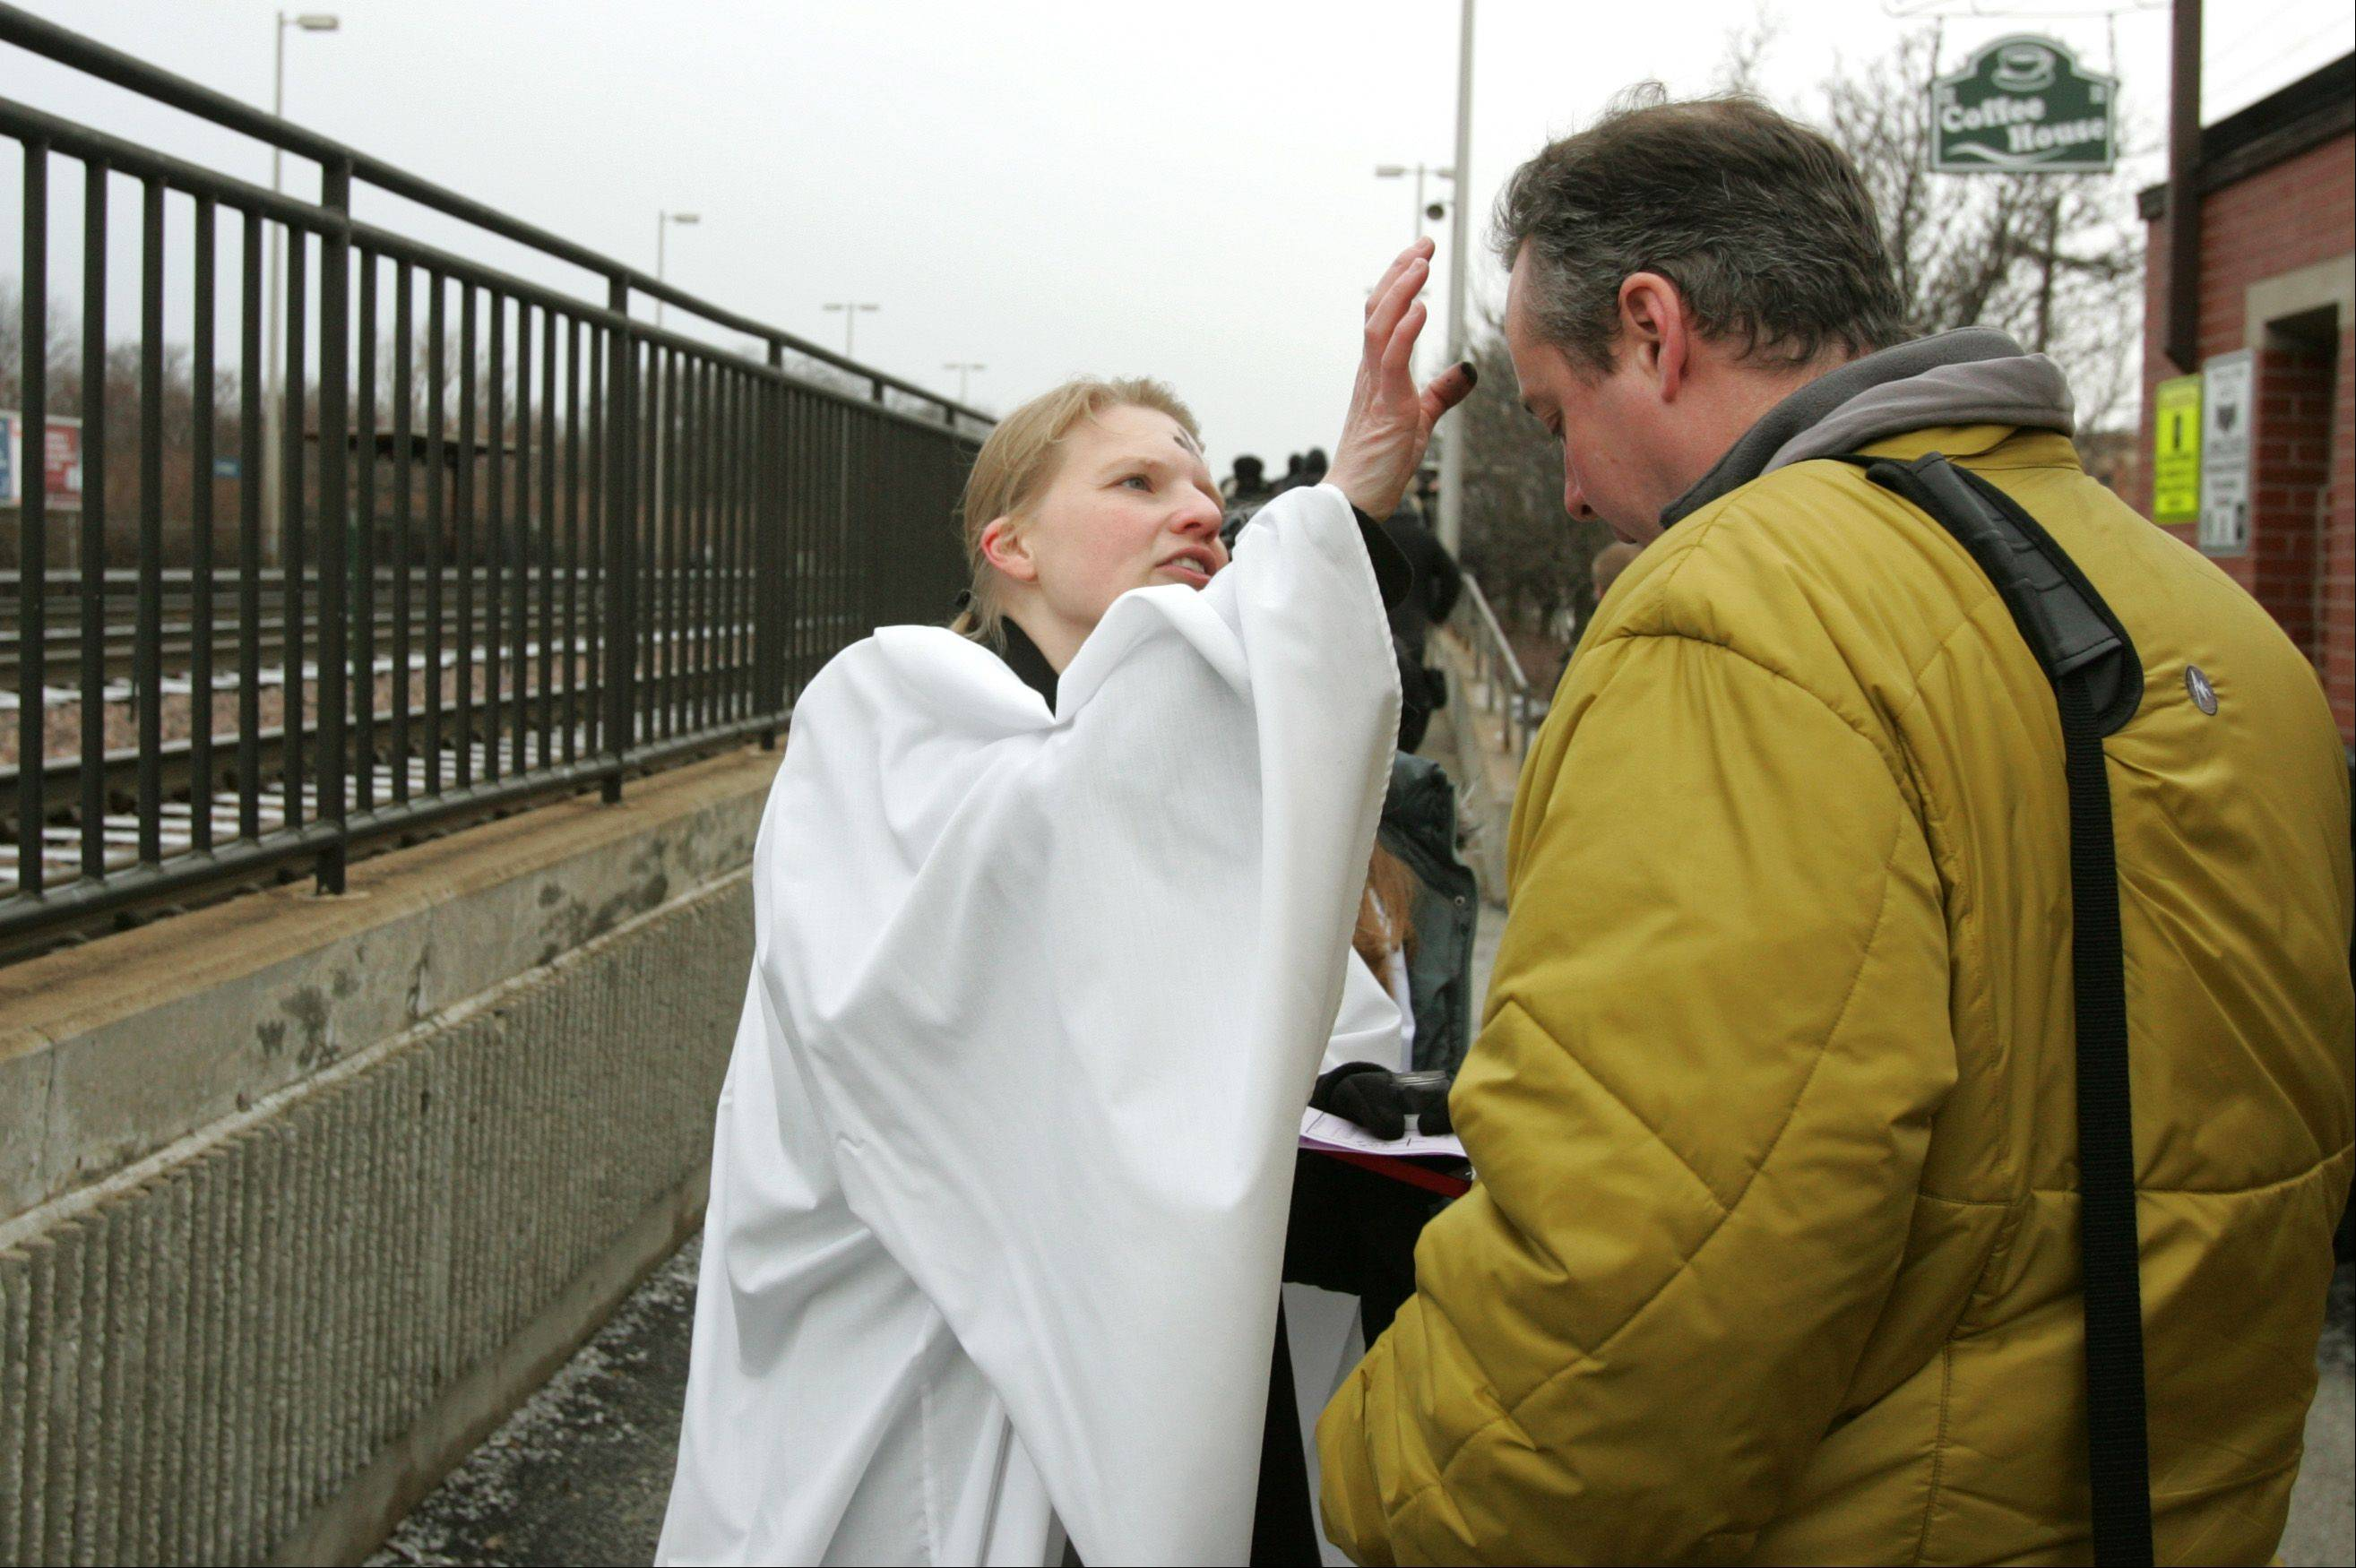 Rev. Emily Mellott of Calvary Episcopal Church in Lombard began dispensing ashes to commuters at Lombard's Metra station in 2010. She and others from her church will be at the platform from 6 to 8:45 a.m. on Ash Wednesday to continue the tradition.